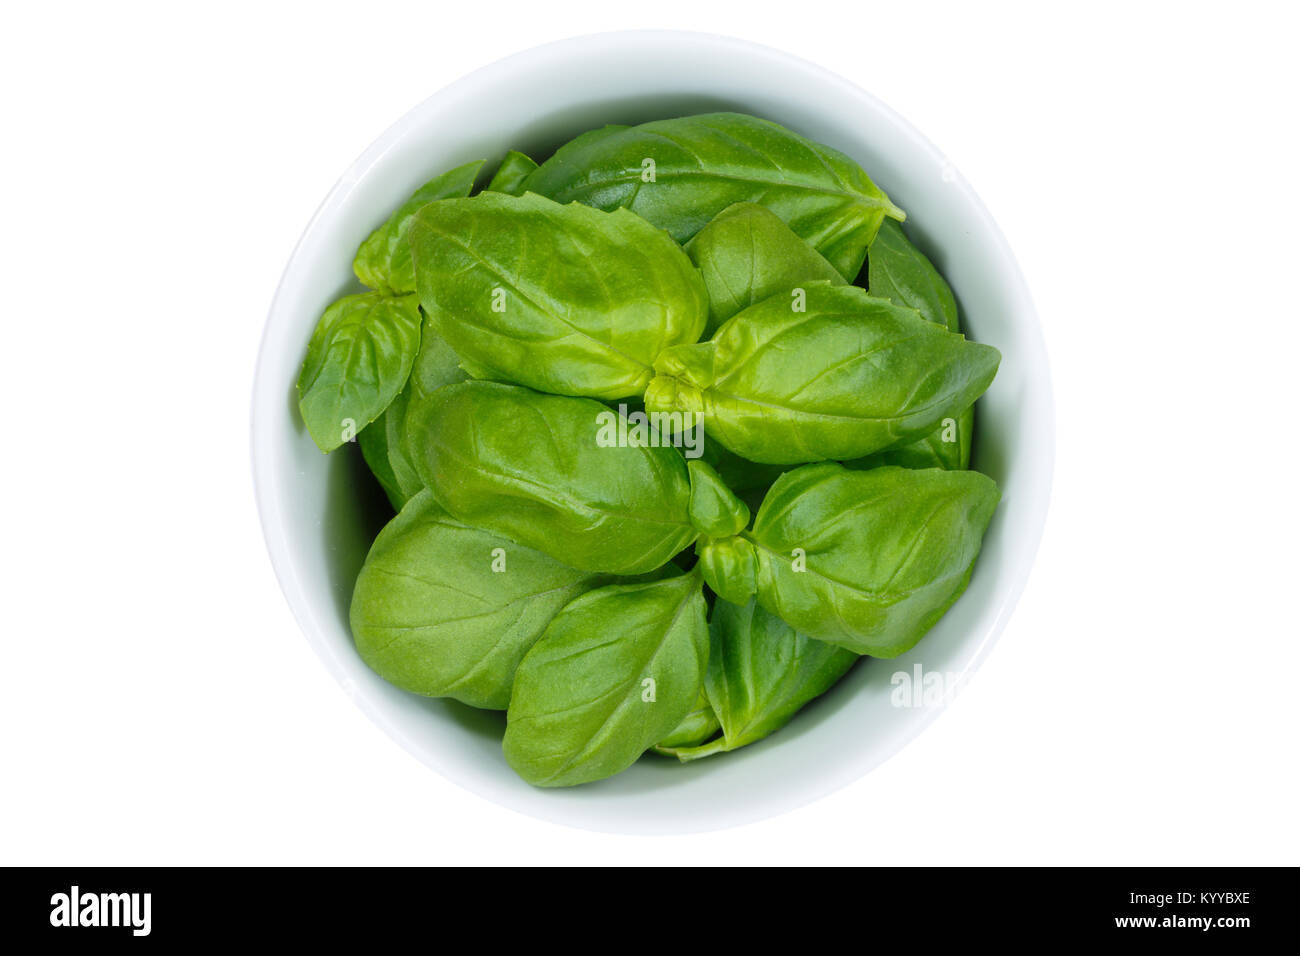 Basil herbs herb from above bowl isolated on a white background - Stock Image